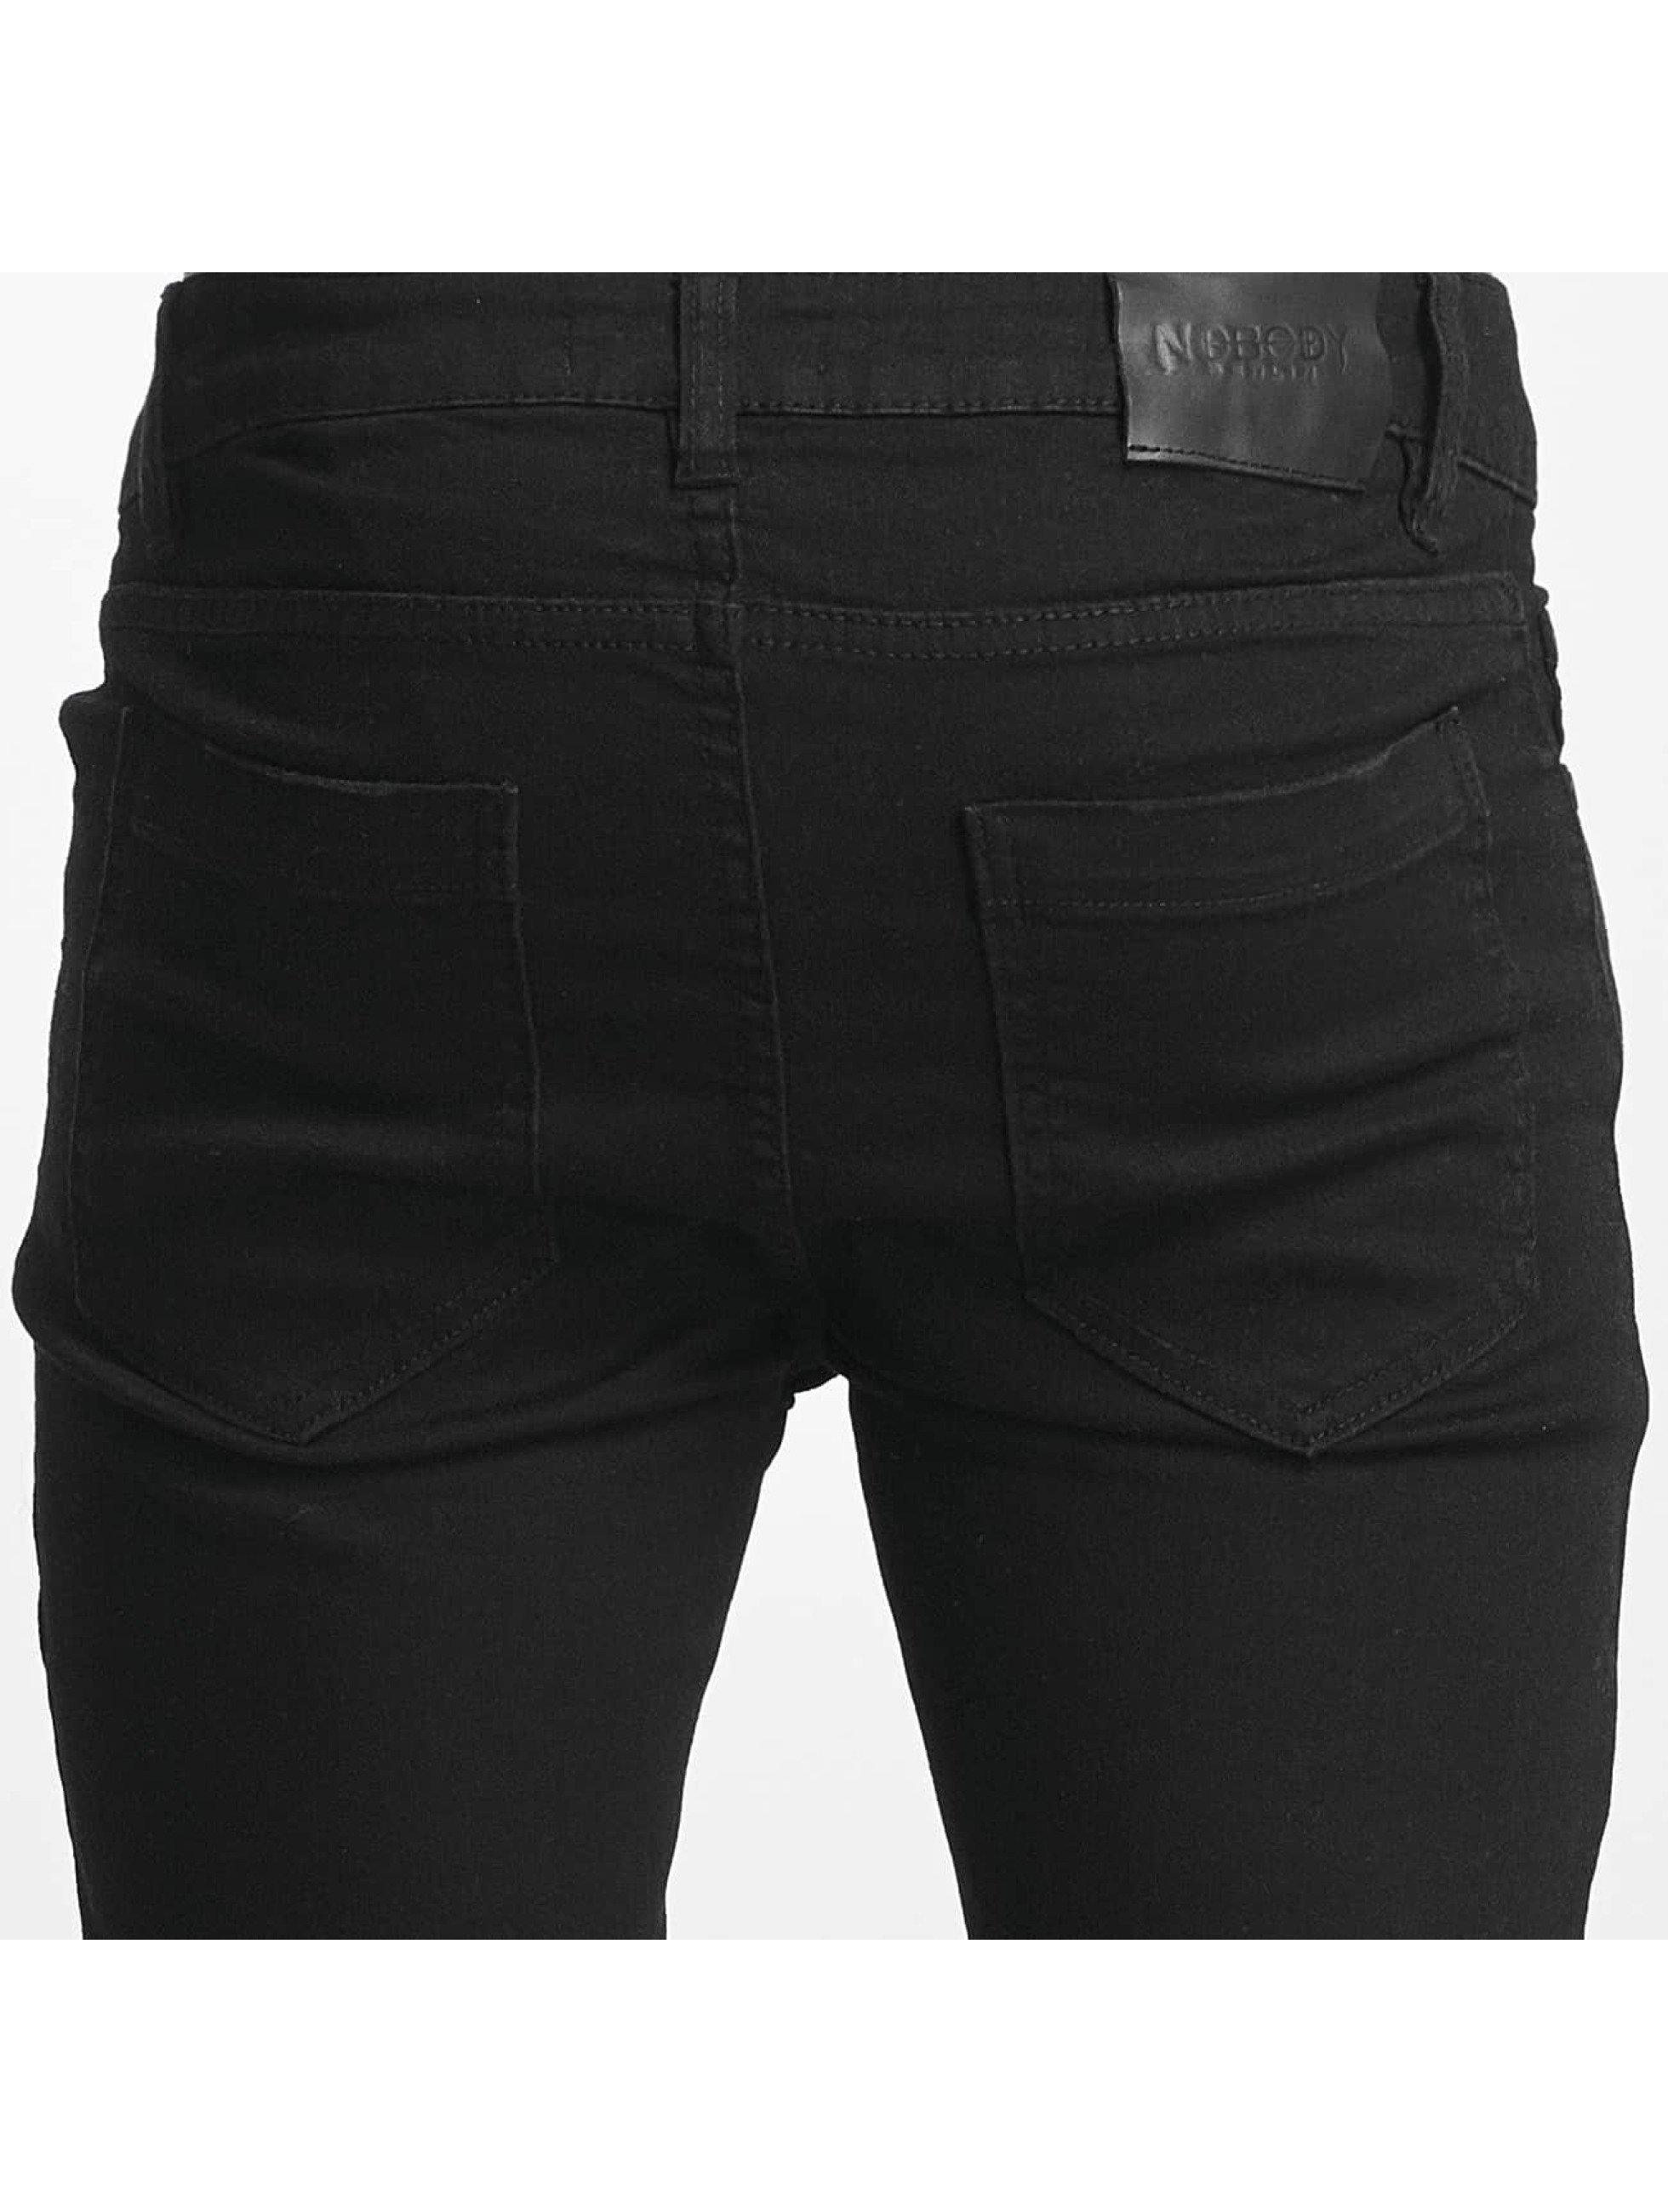 Nobody Berlin Skinny Jeans Destroyed black